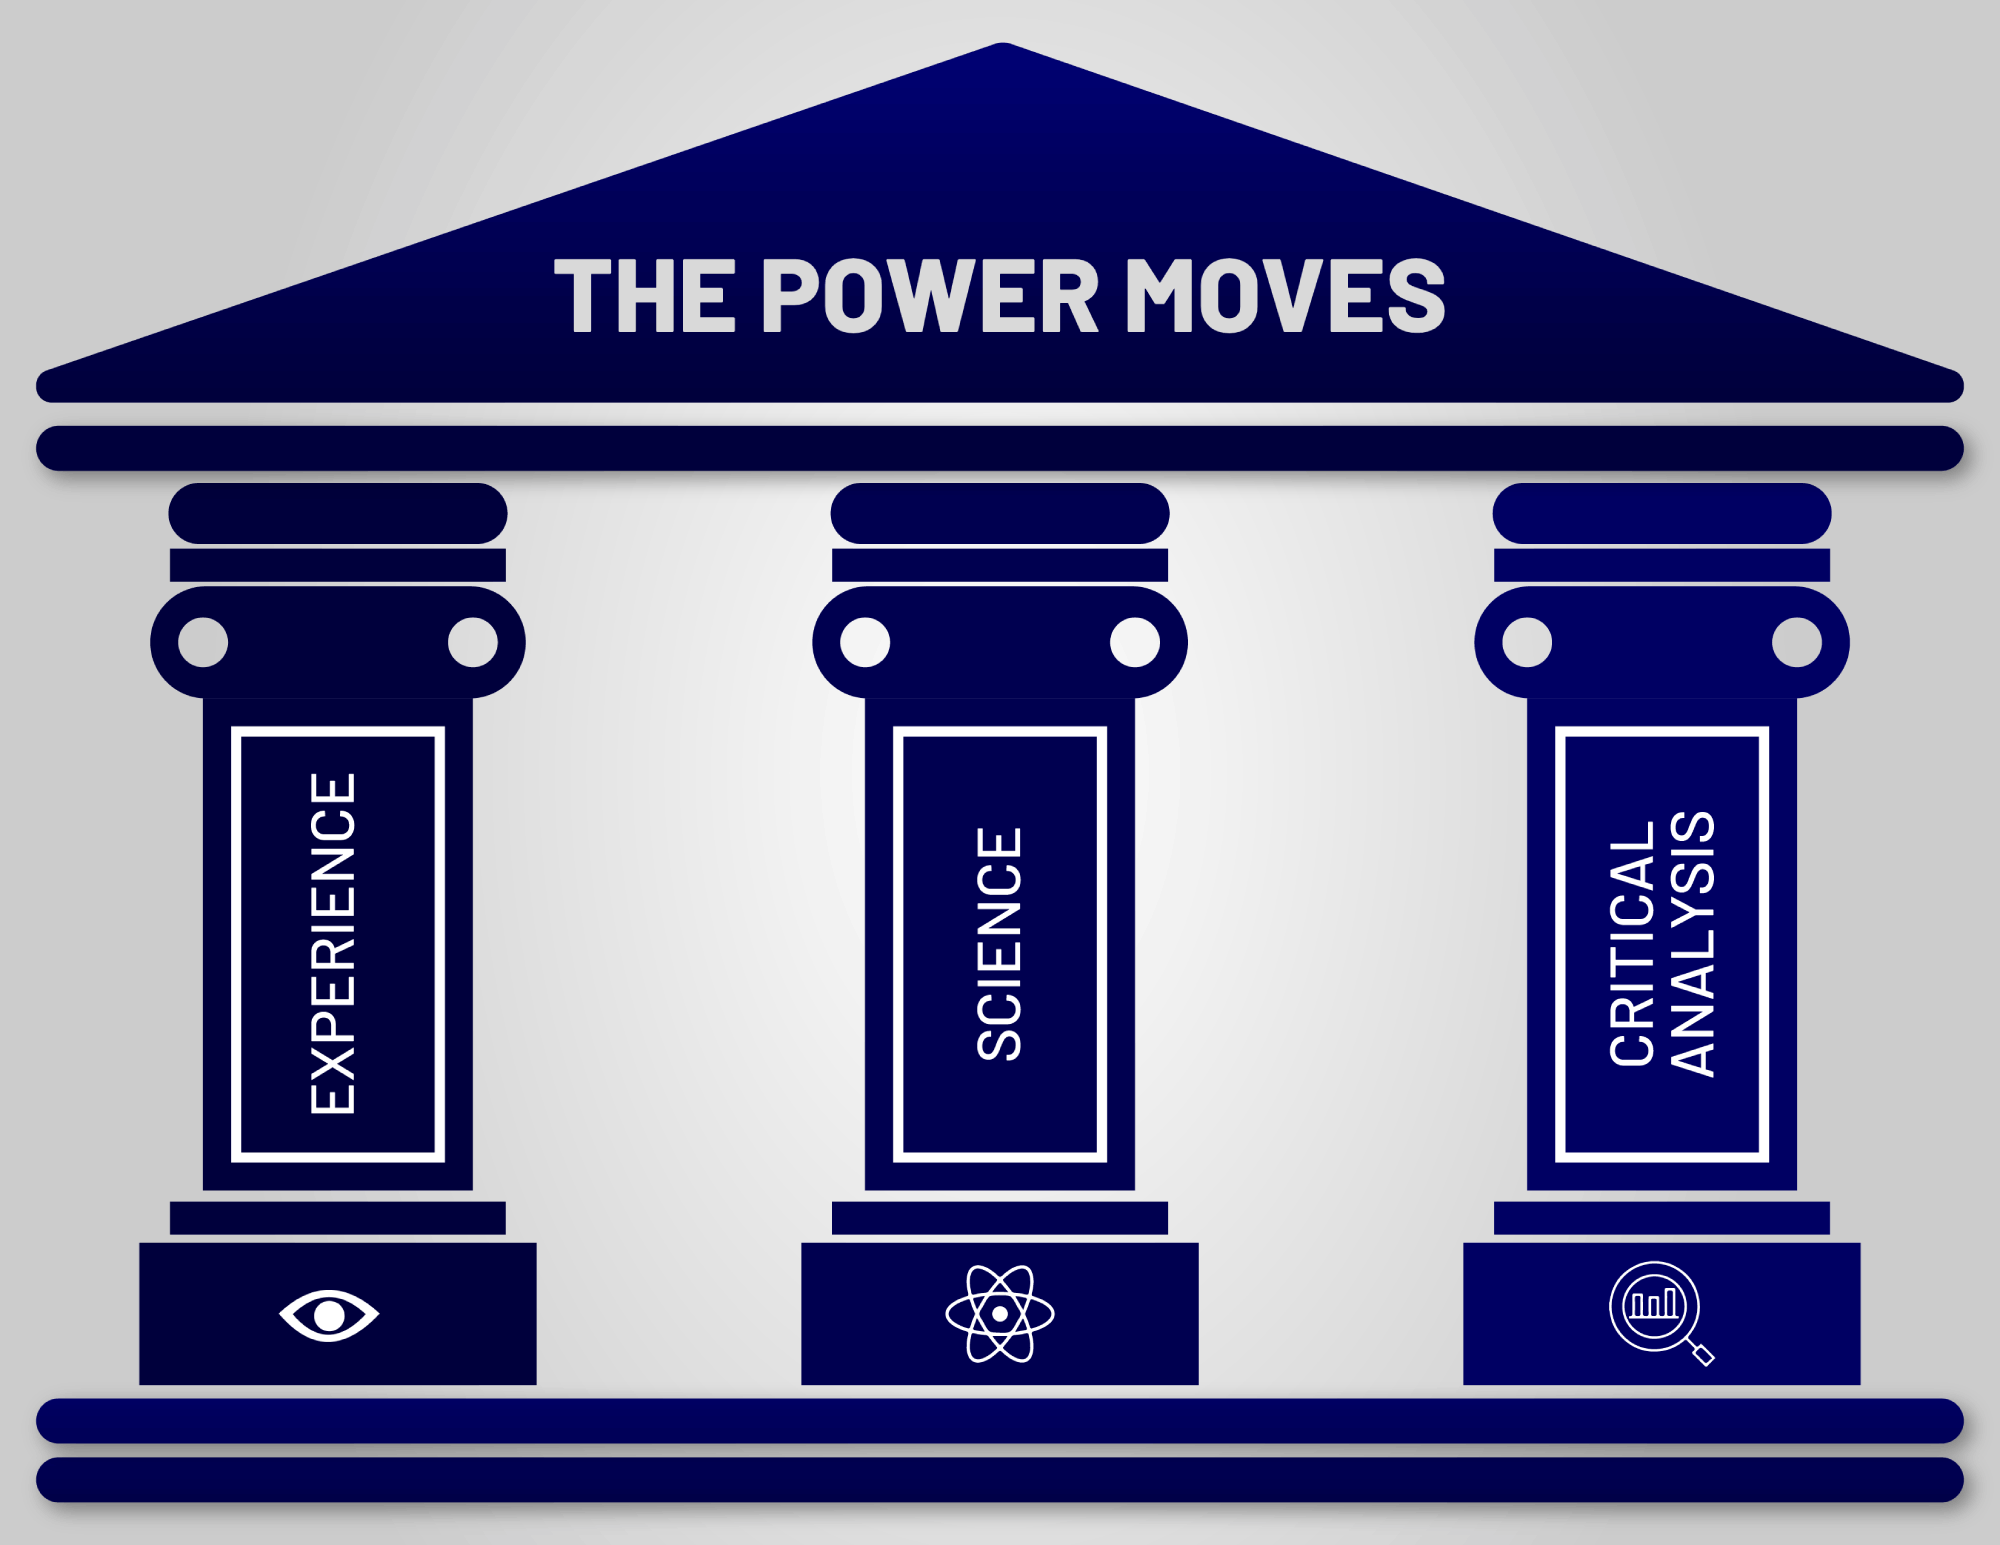 the three pillars of knowledge in the power moves